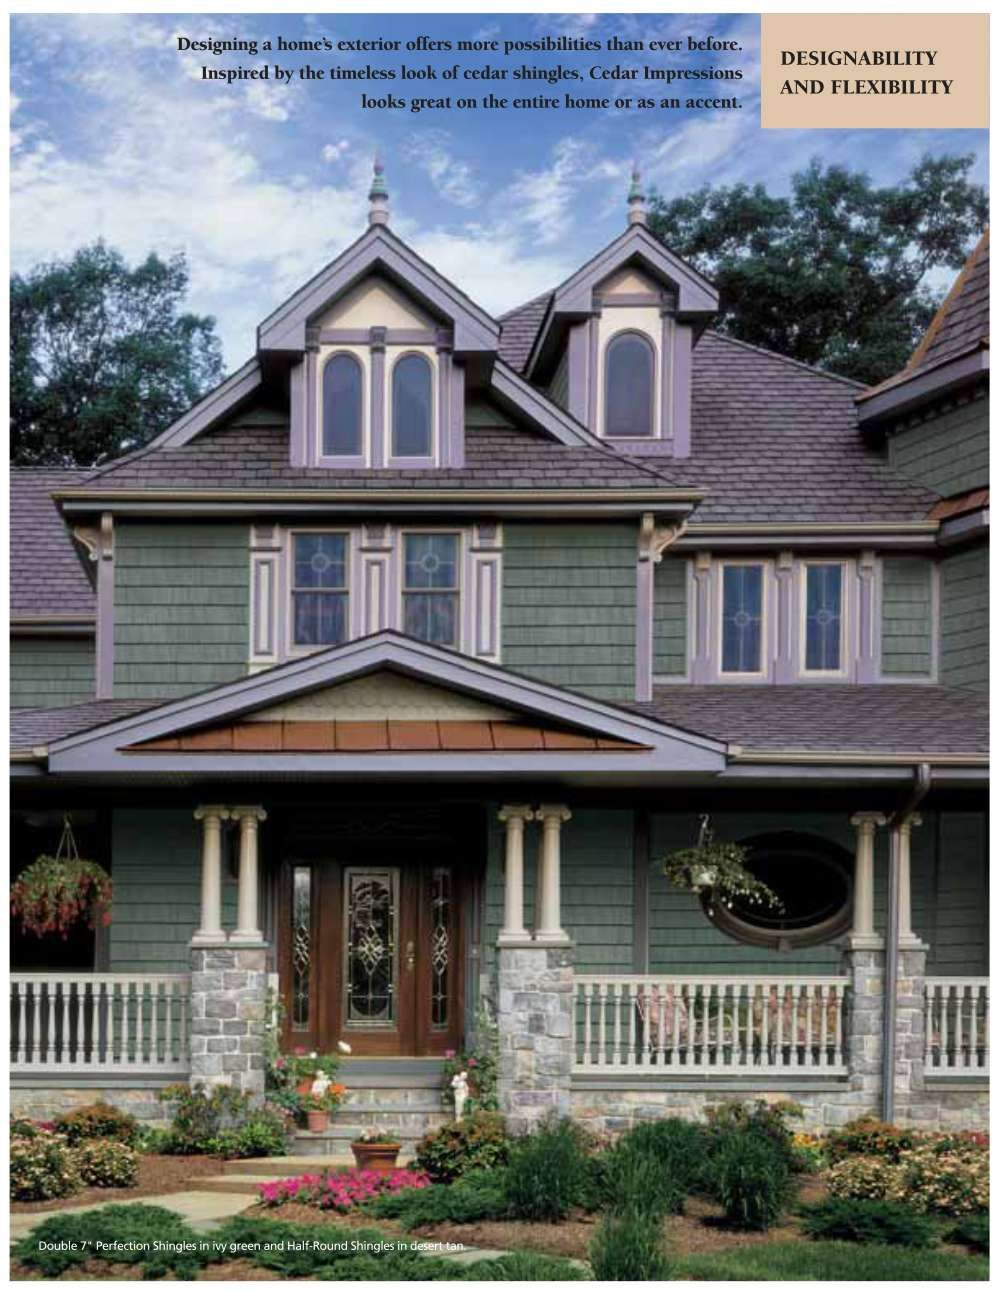 Wonderful Exterior Design With Certainteed Siding For Home Ideas Beautiful Exterior Design With Cedar Certainteed House Exterior Exterior Design House Colors